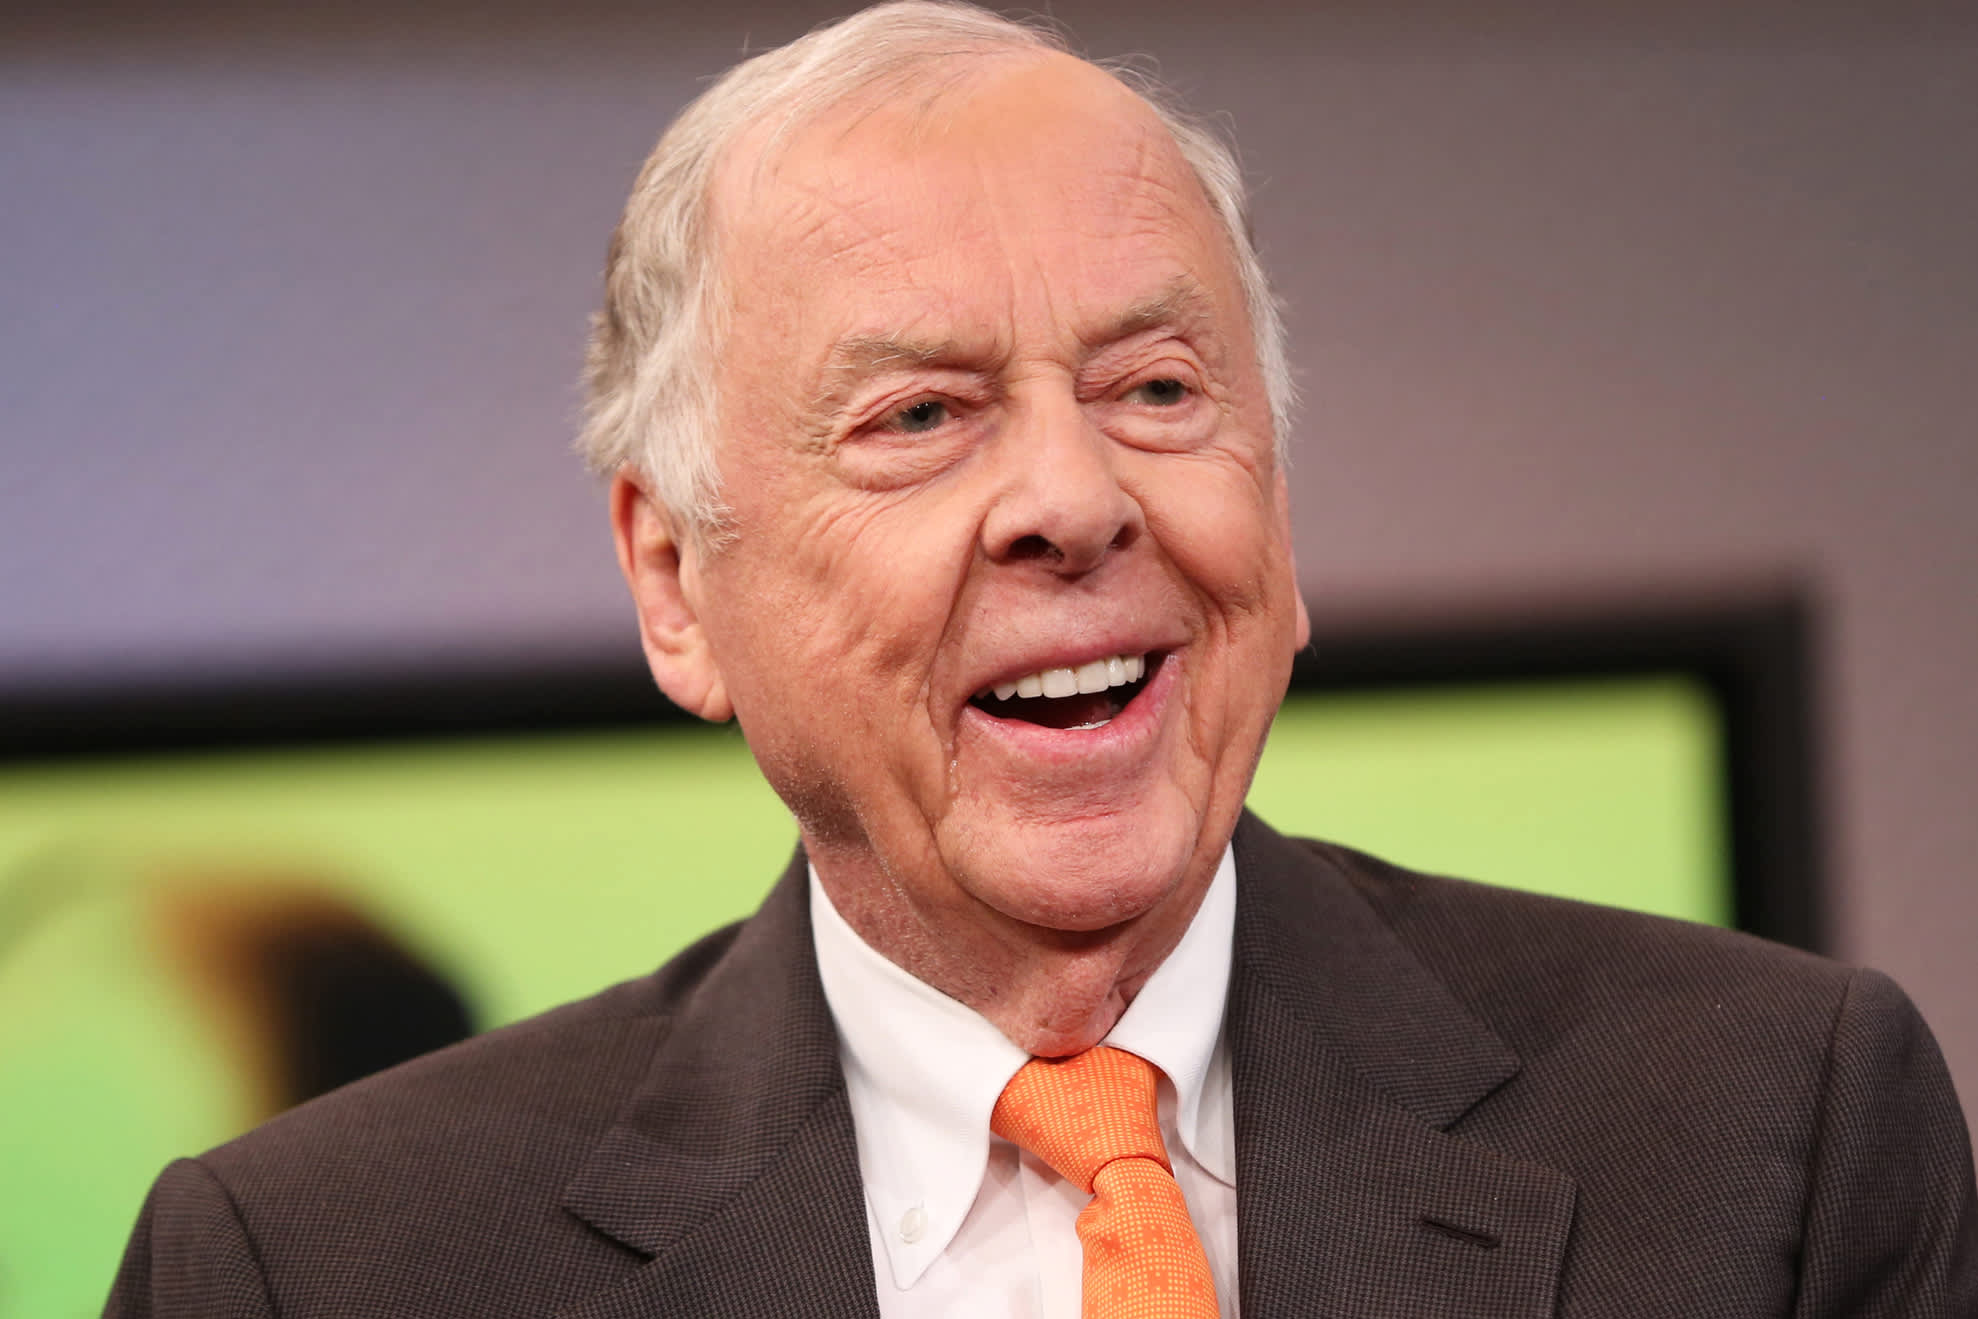 Buffett, Icahn remember the late T. Boone Pickens for 'great wit' and inimitable Texas personality